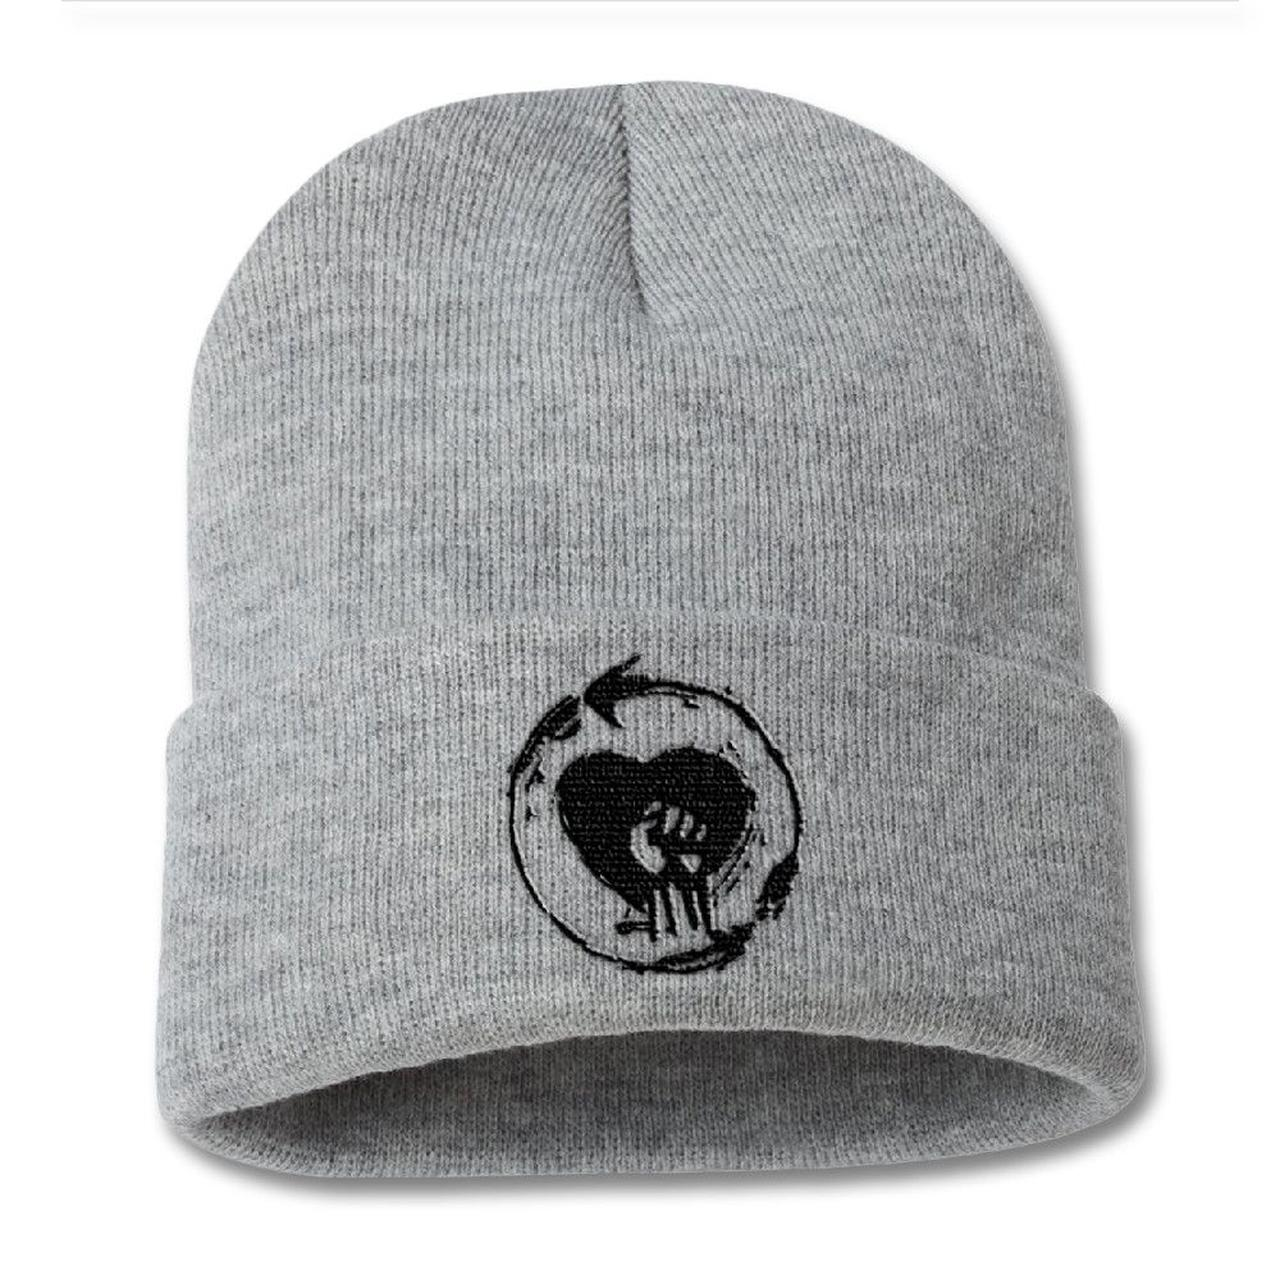 Rise Against. Embroidered Heartfist Beanie 7f91e083187